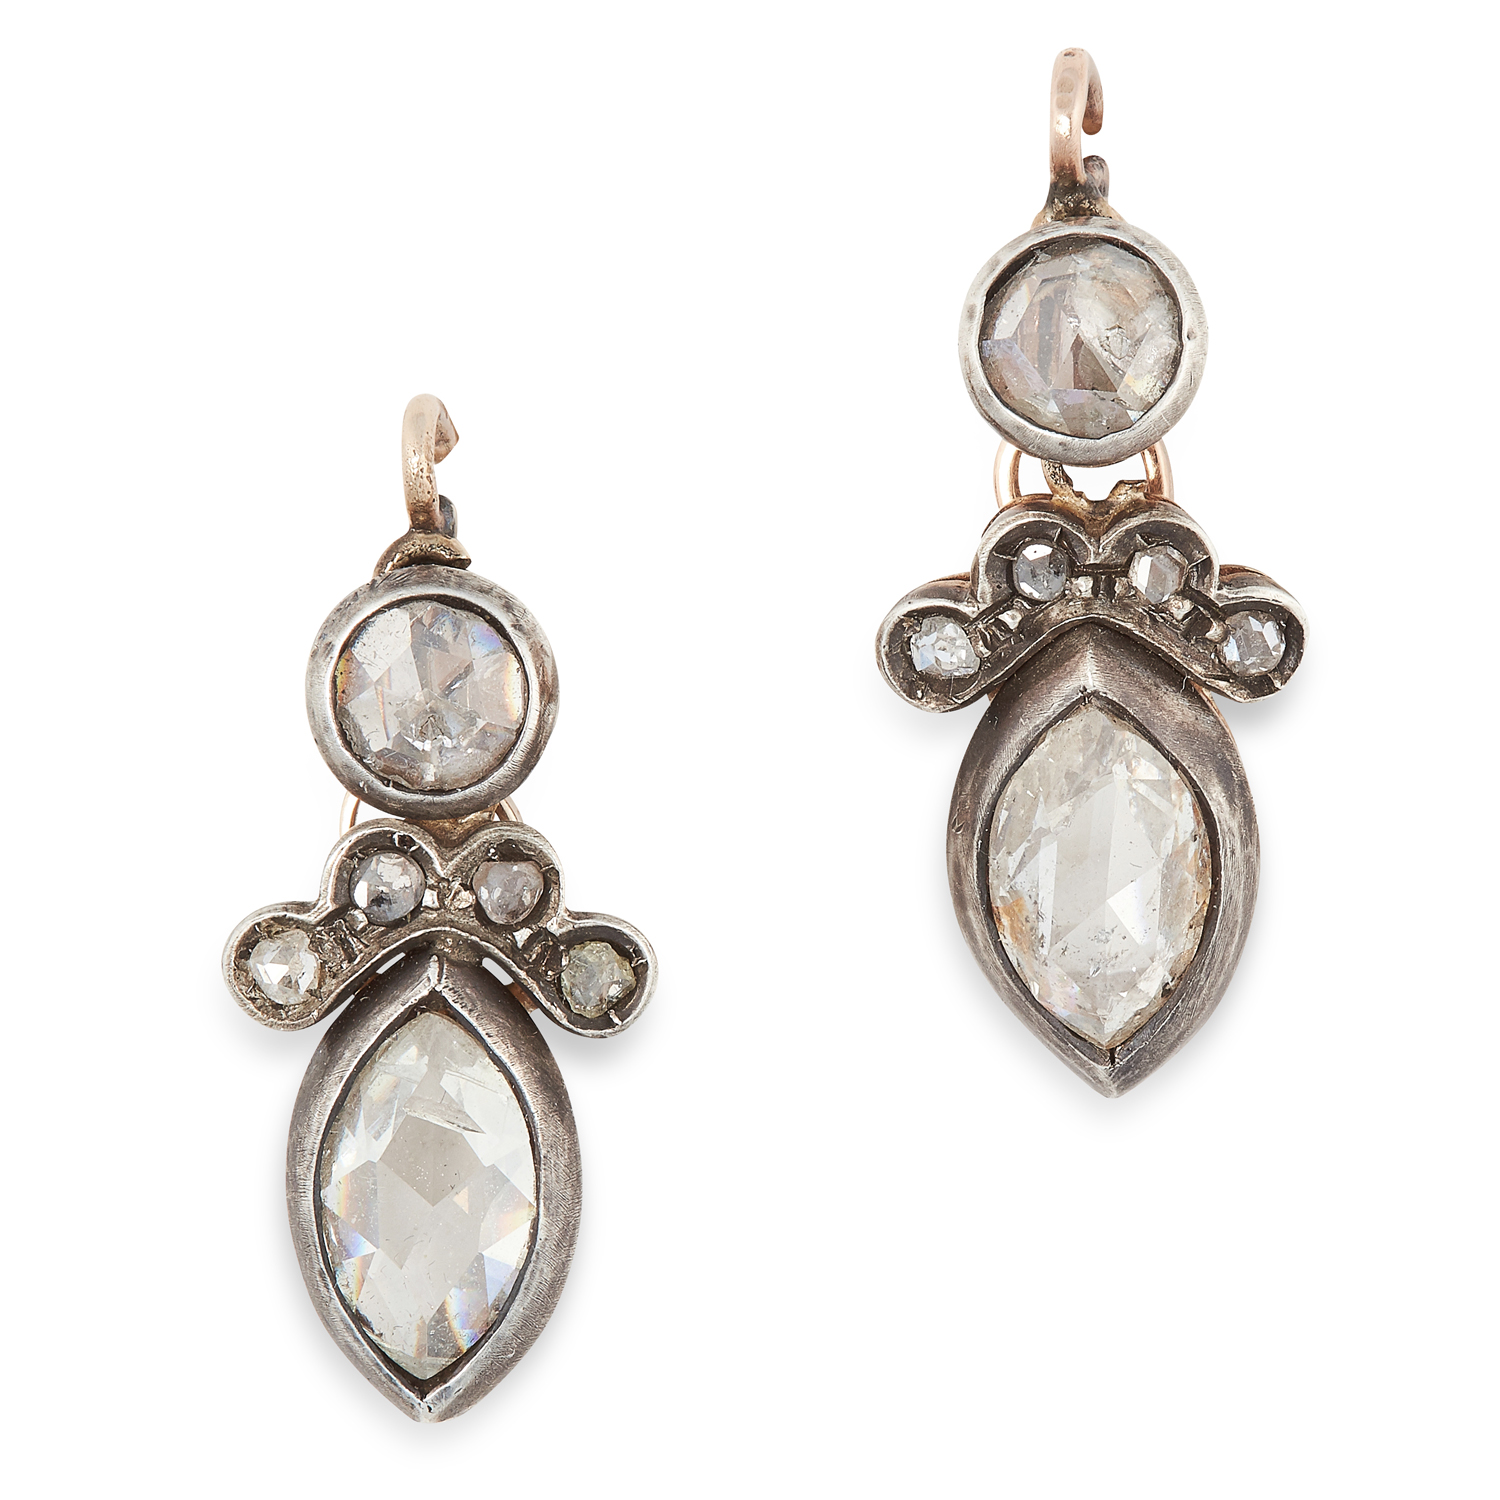 A PAIR OF ANTIQUE DIAMOND EARRINGS, 19TH CENTURY in yellow gold and silver, each set with a